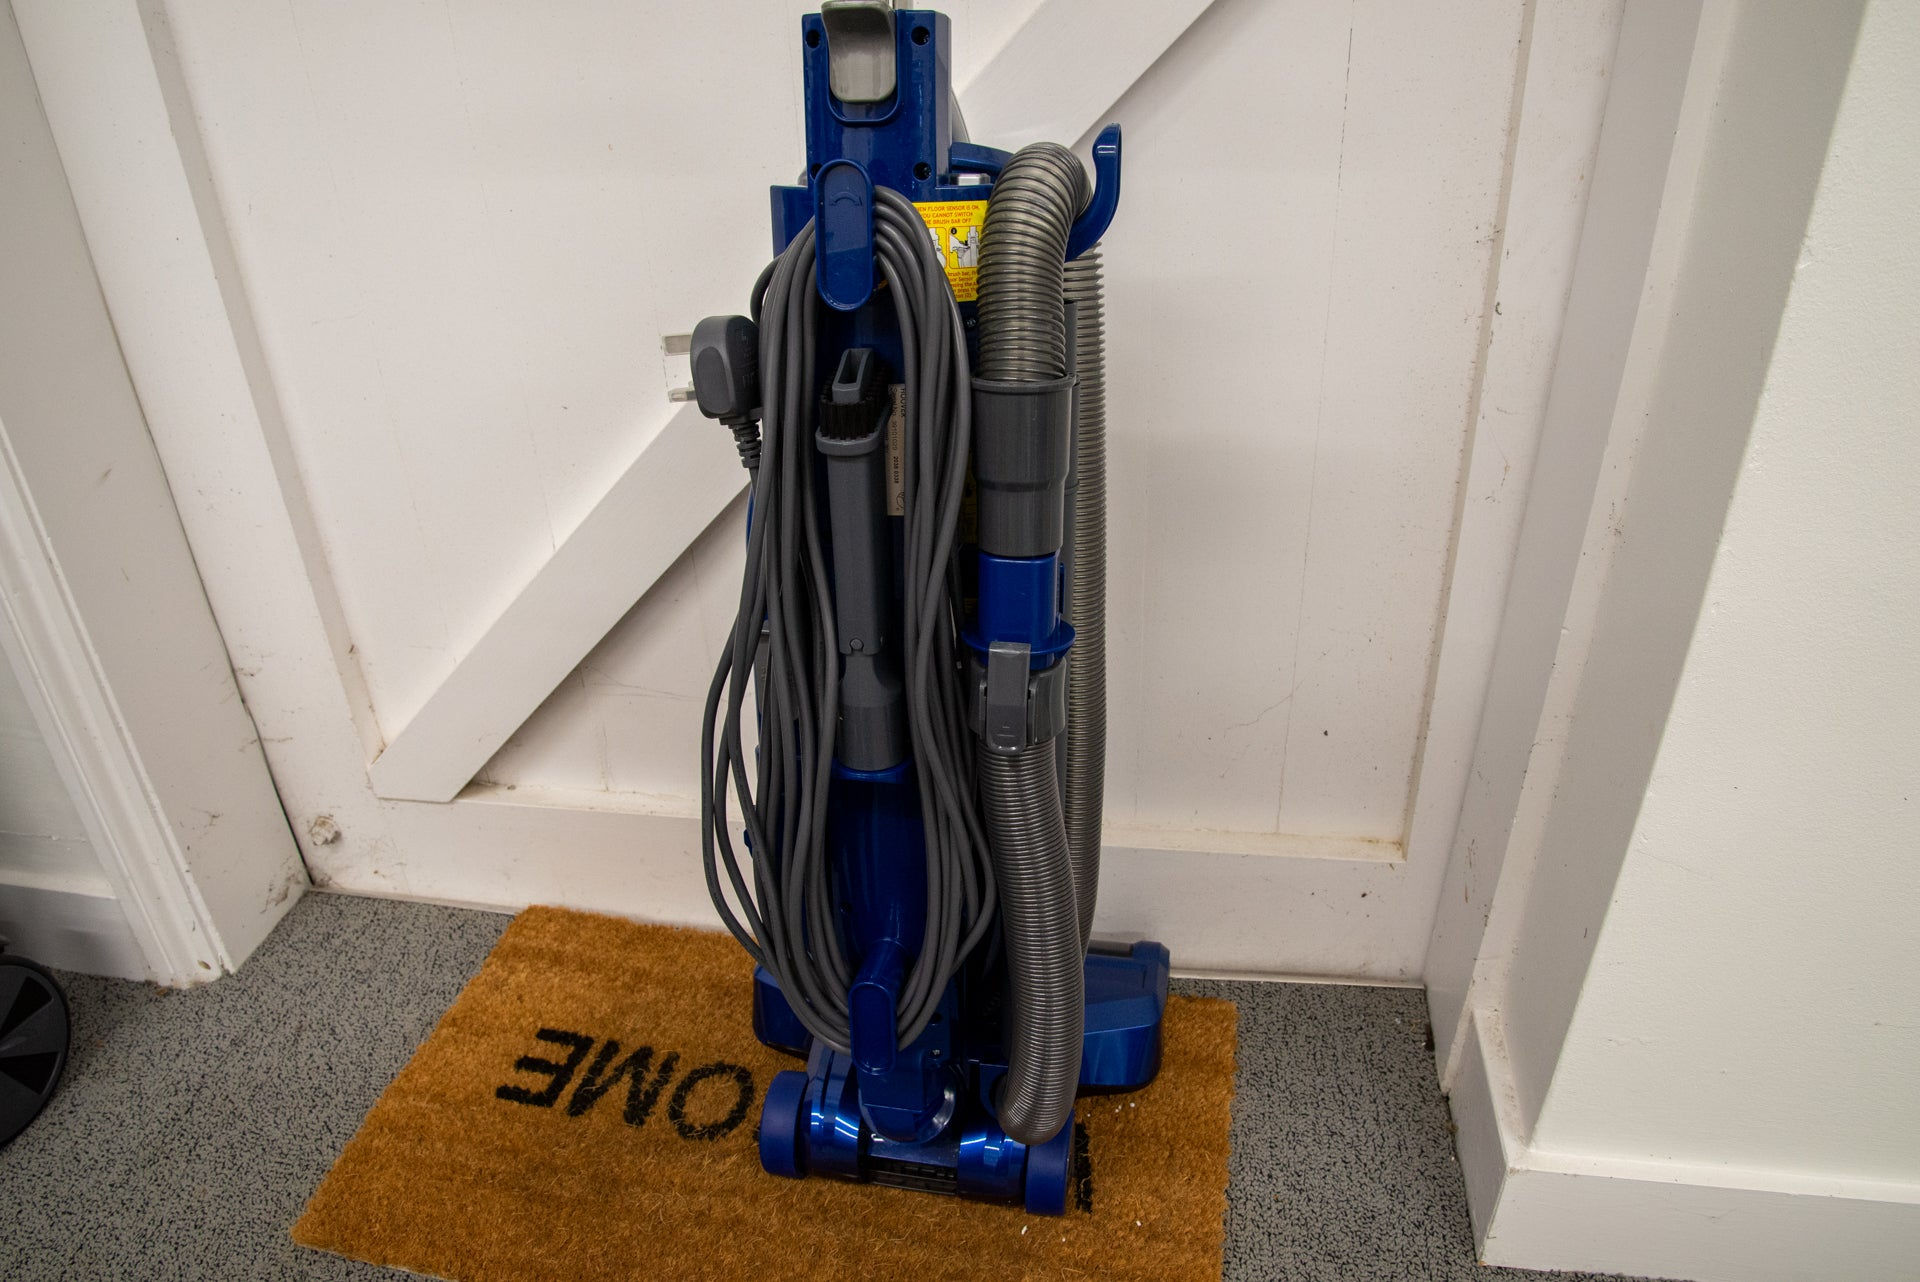 Hoover H-Upright 500 Plus rear with storage